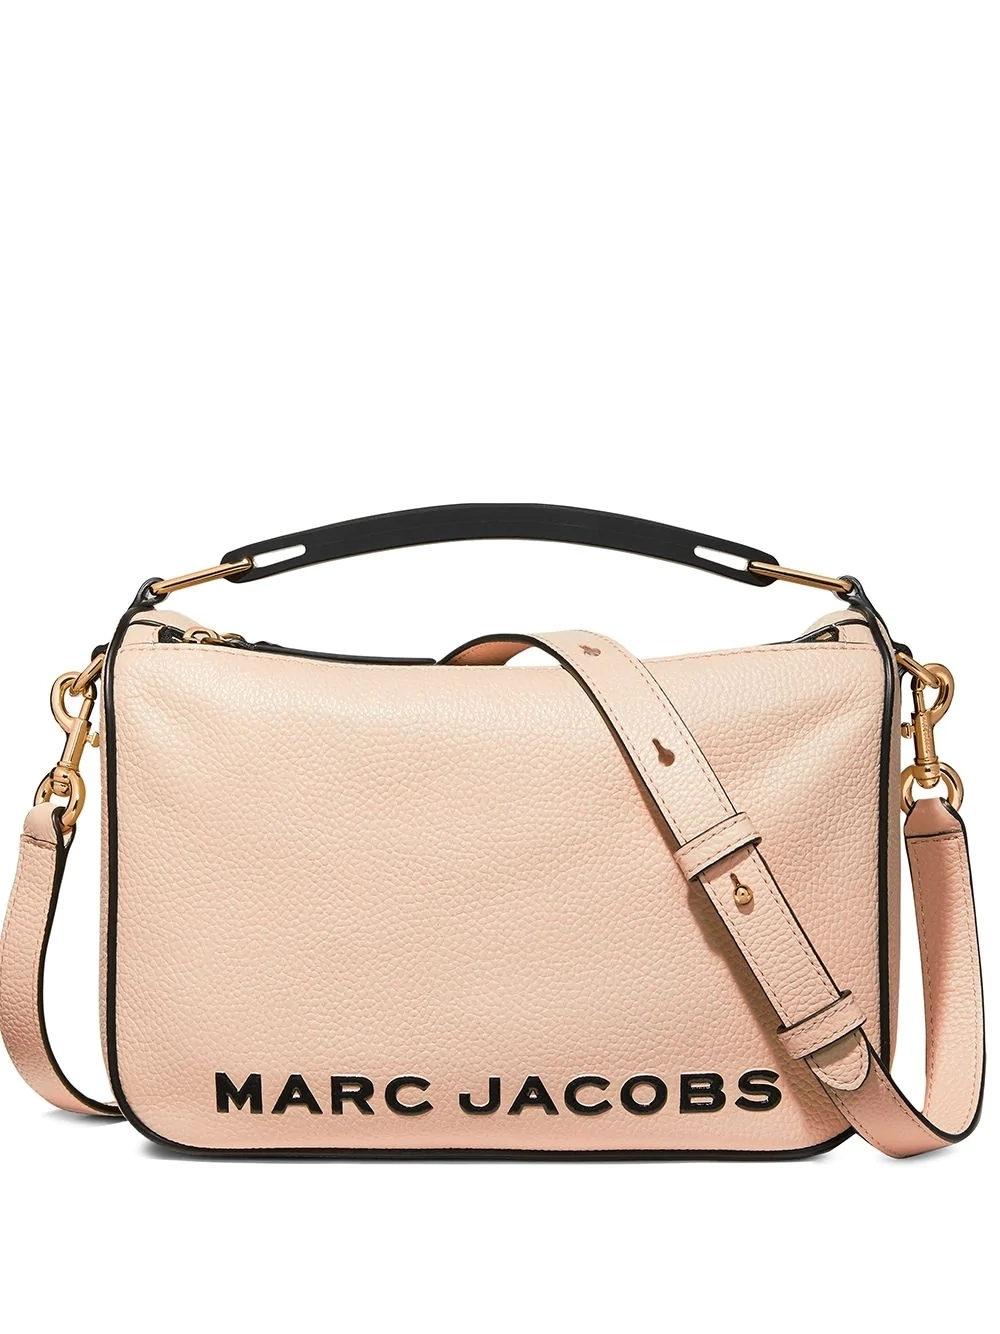 【Marc Jacobs】 The Softbox 23 バッグ (MARC JACOBS/ショルダーバッグ・ポシェット) 72130040